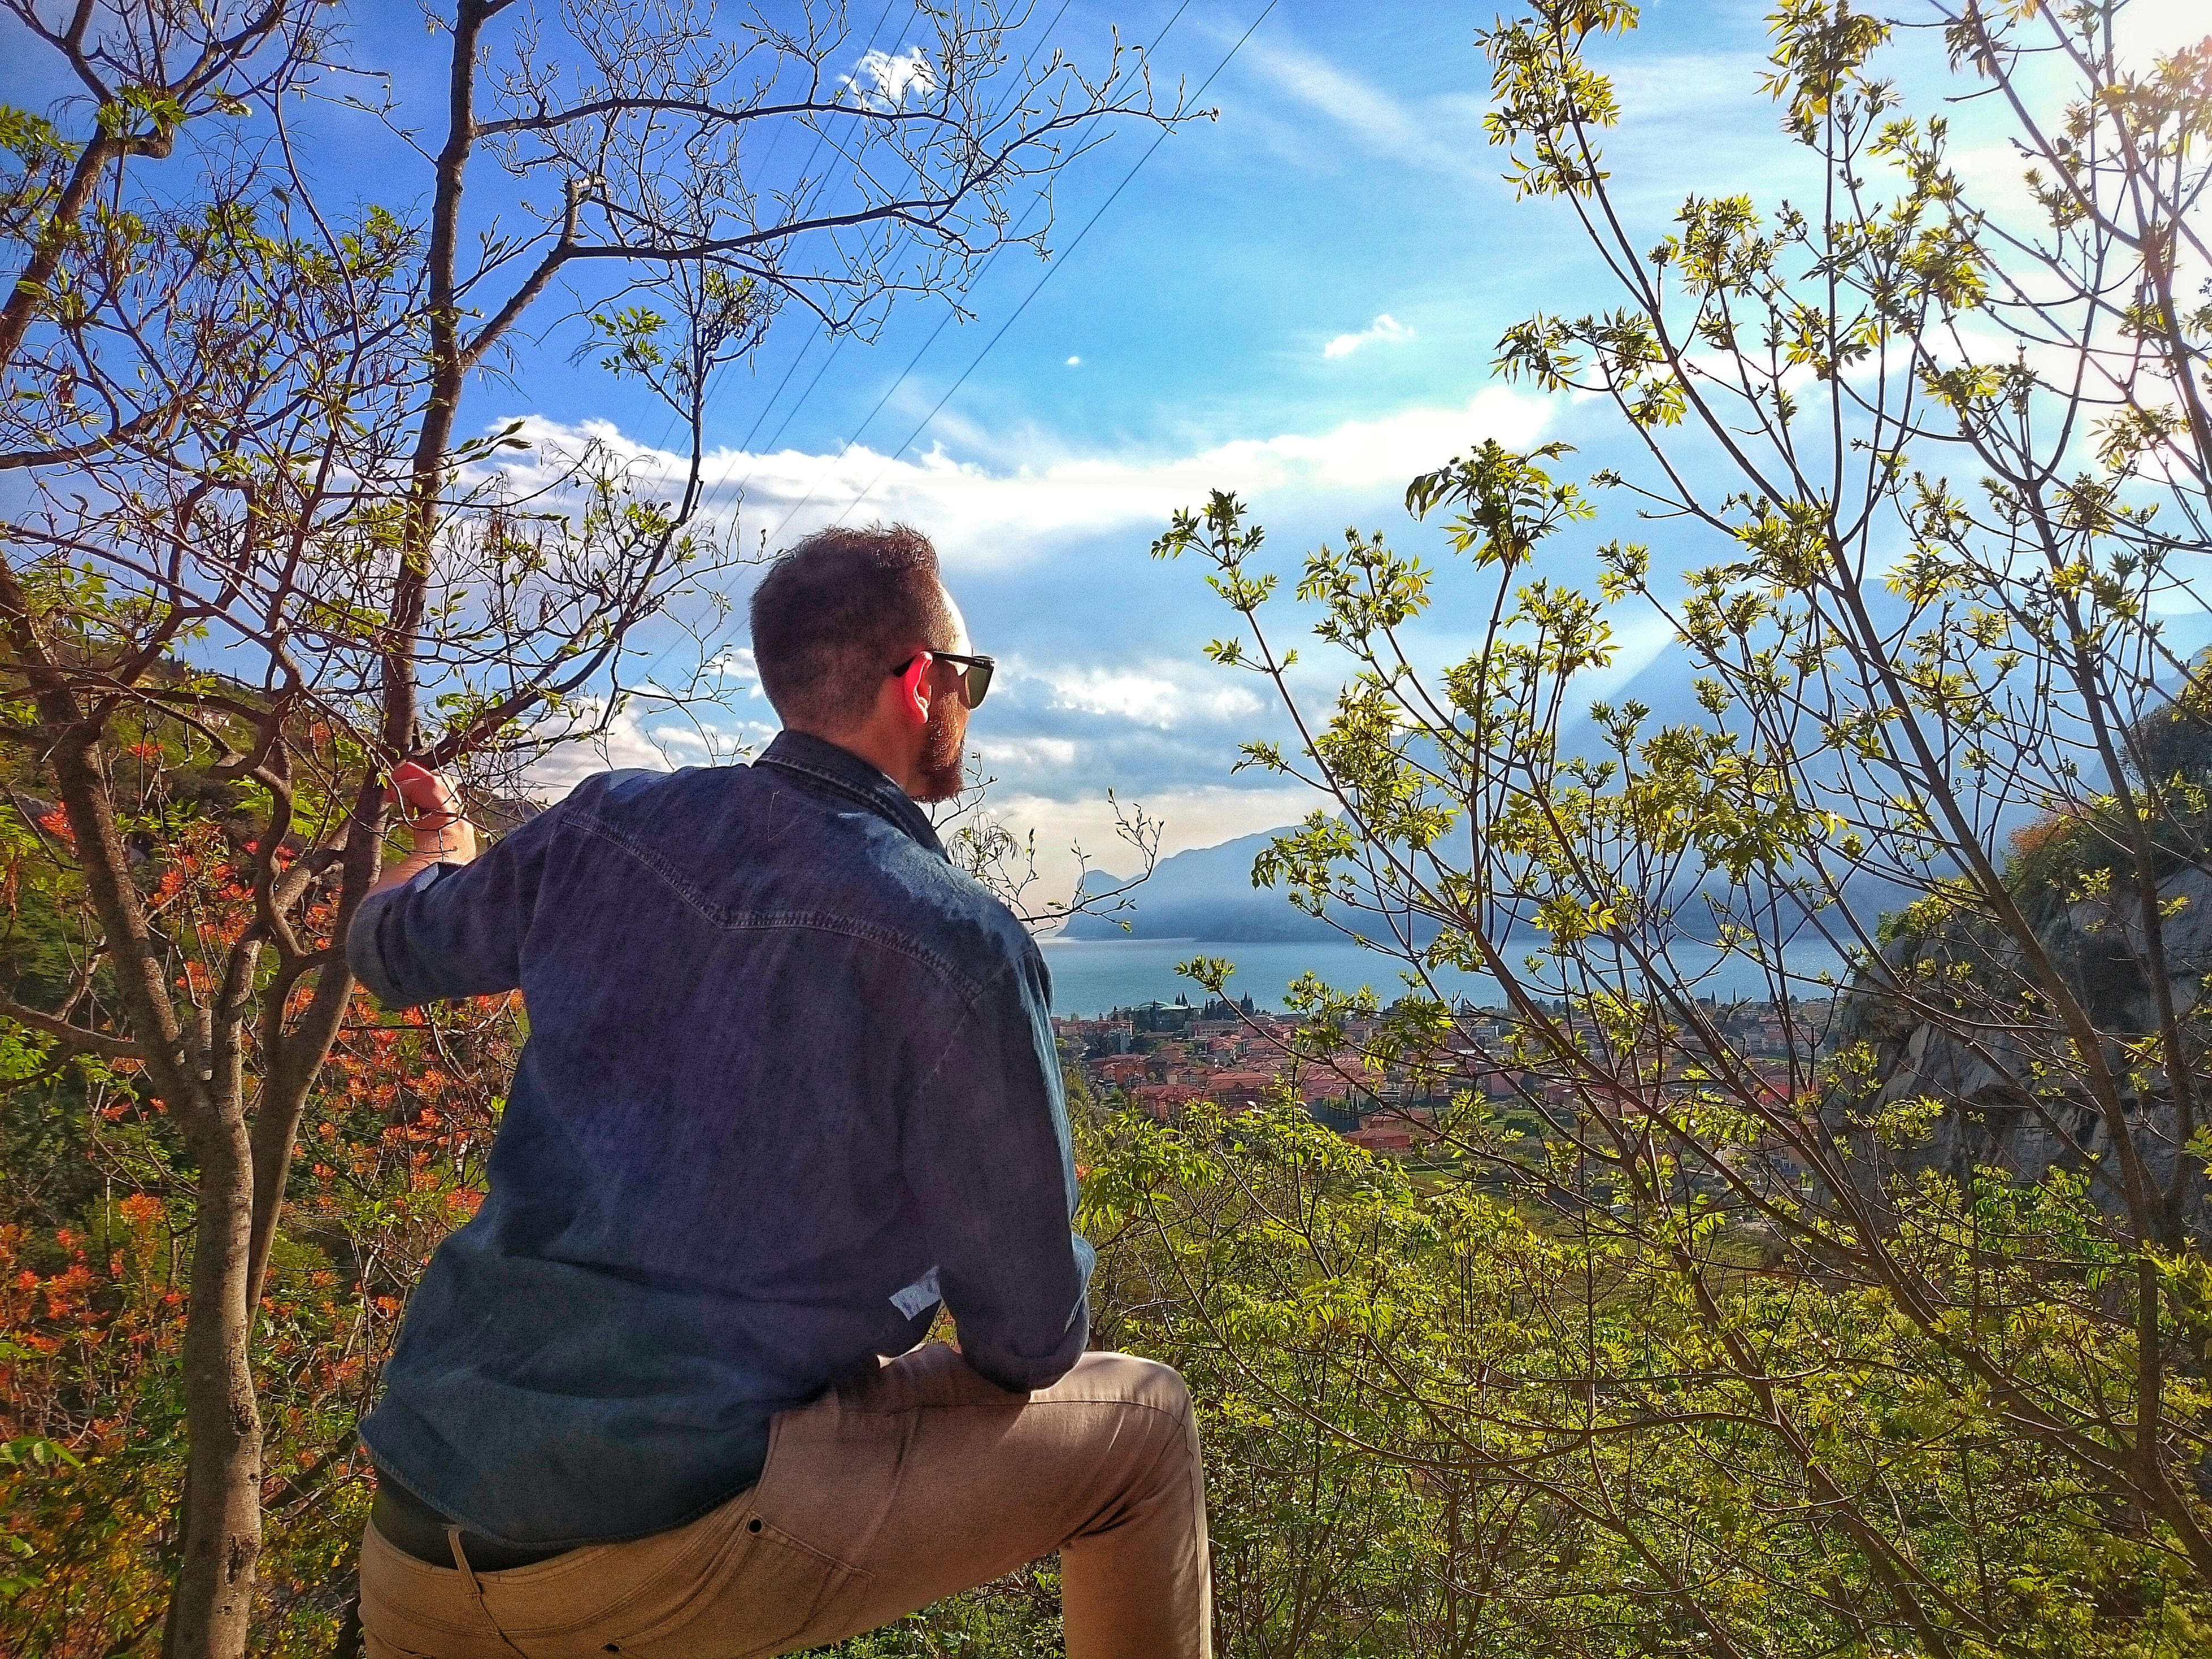 sky, lifestyles, leisure activity, standing, waist up, cloud - sky, three quarter length, rear view, tree, casual clothing, nature, sitting, plant, relaxation, men, tranquility, person, beauty in nature